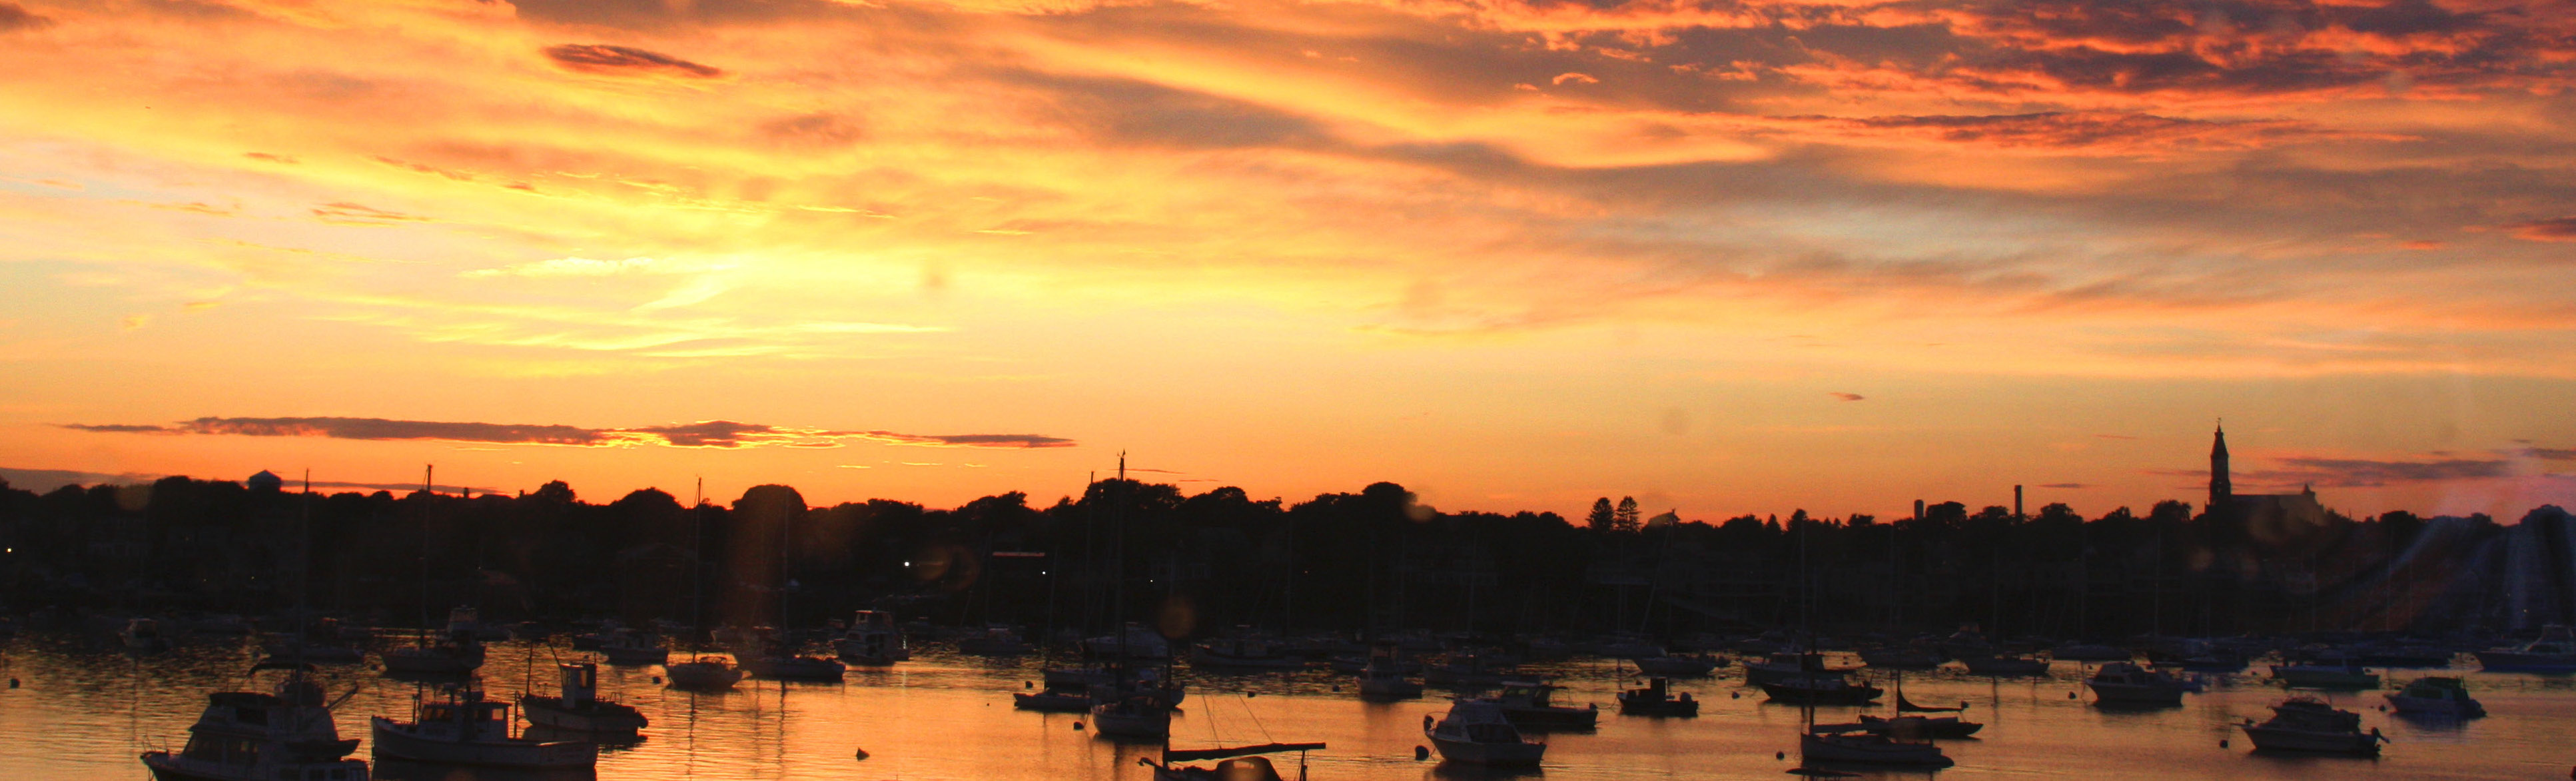 An orange sky stretches over the black silhouette of the Marblehead shore